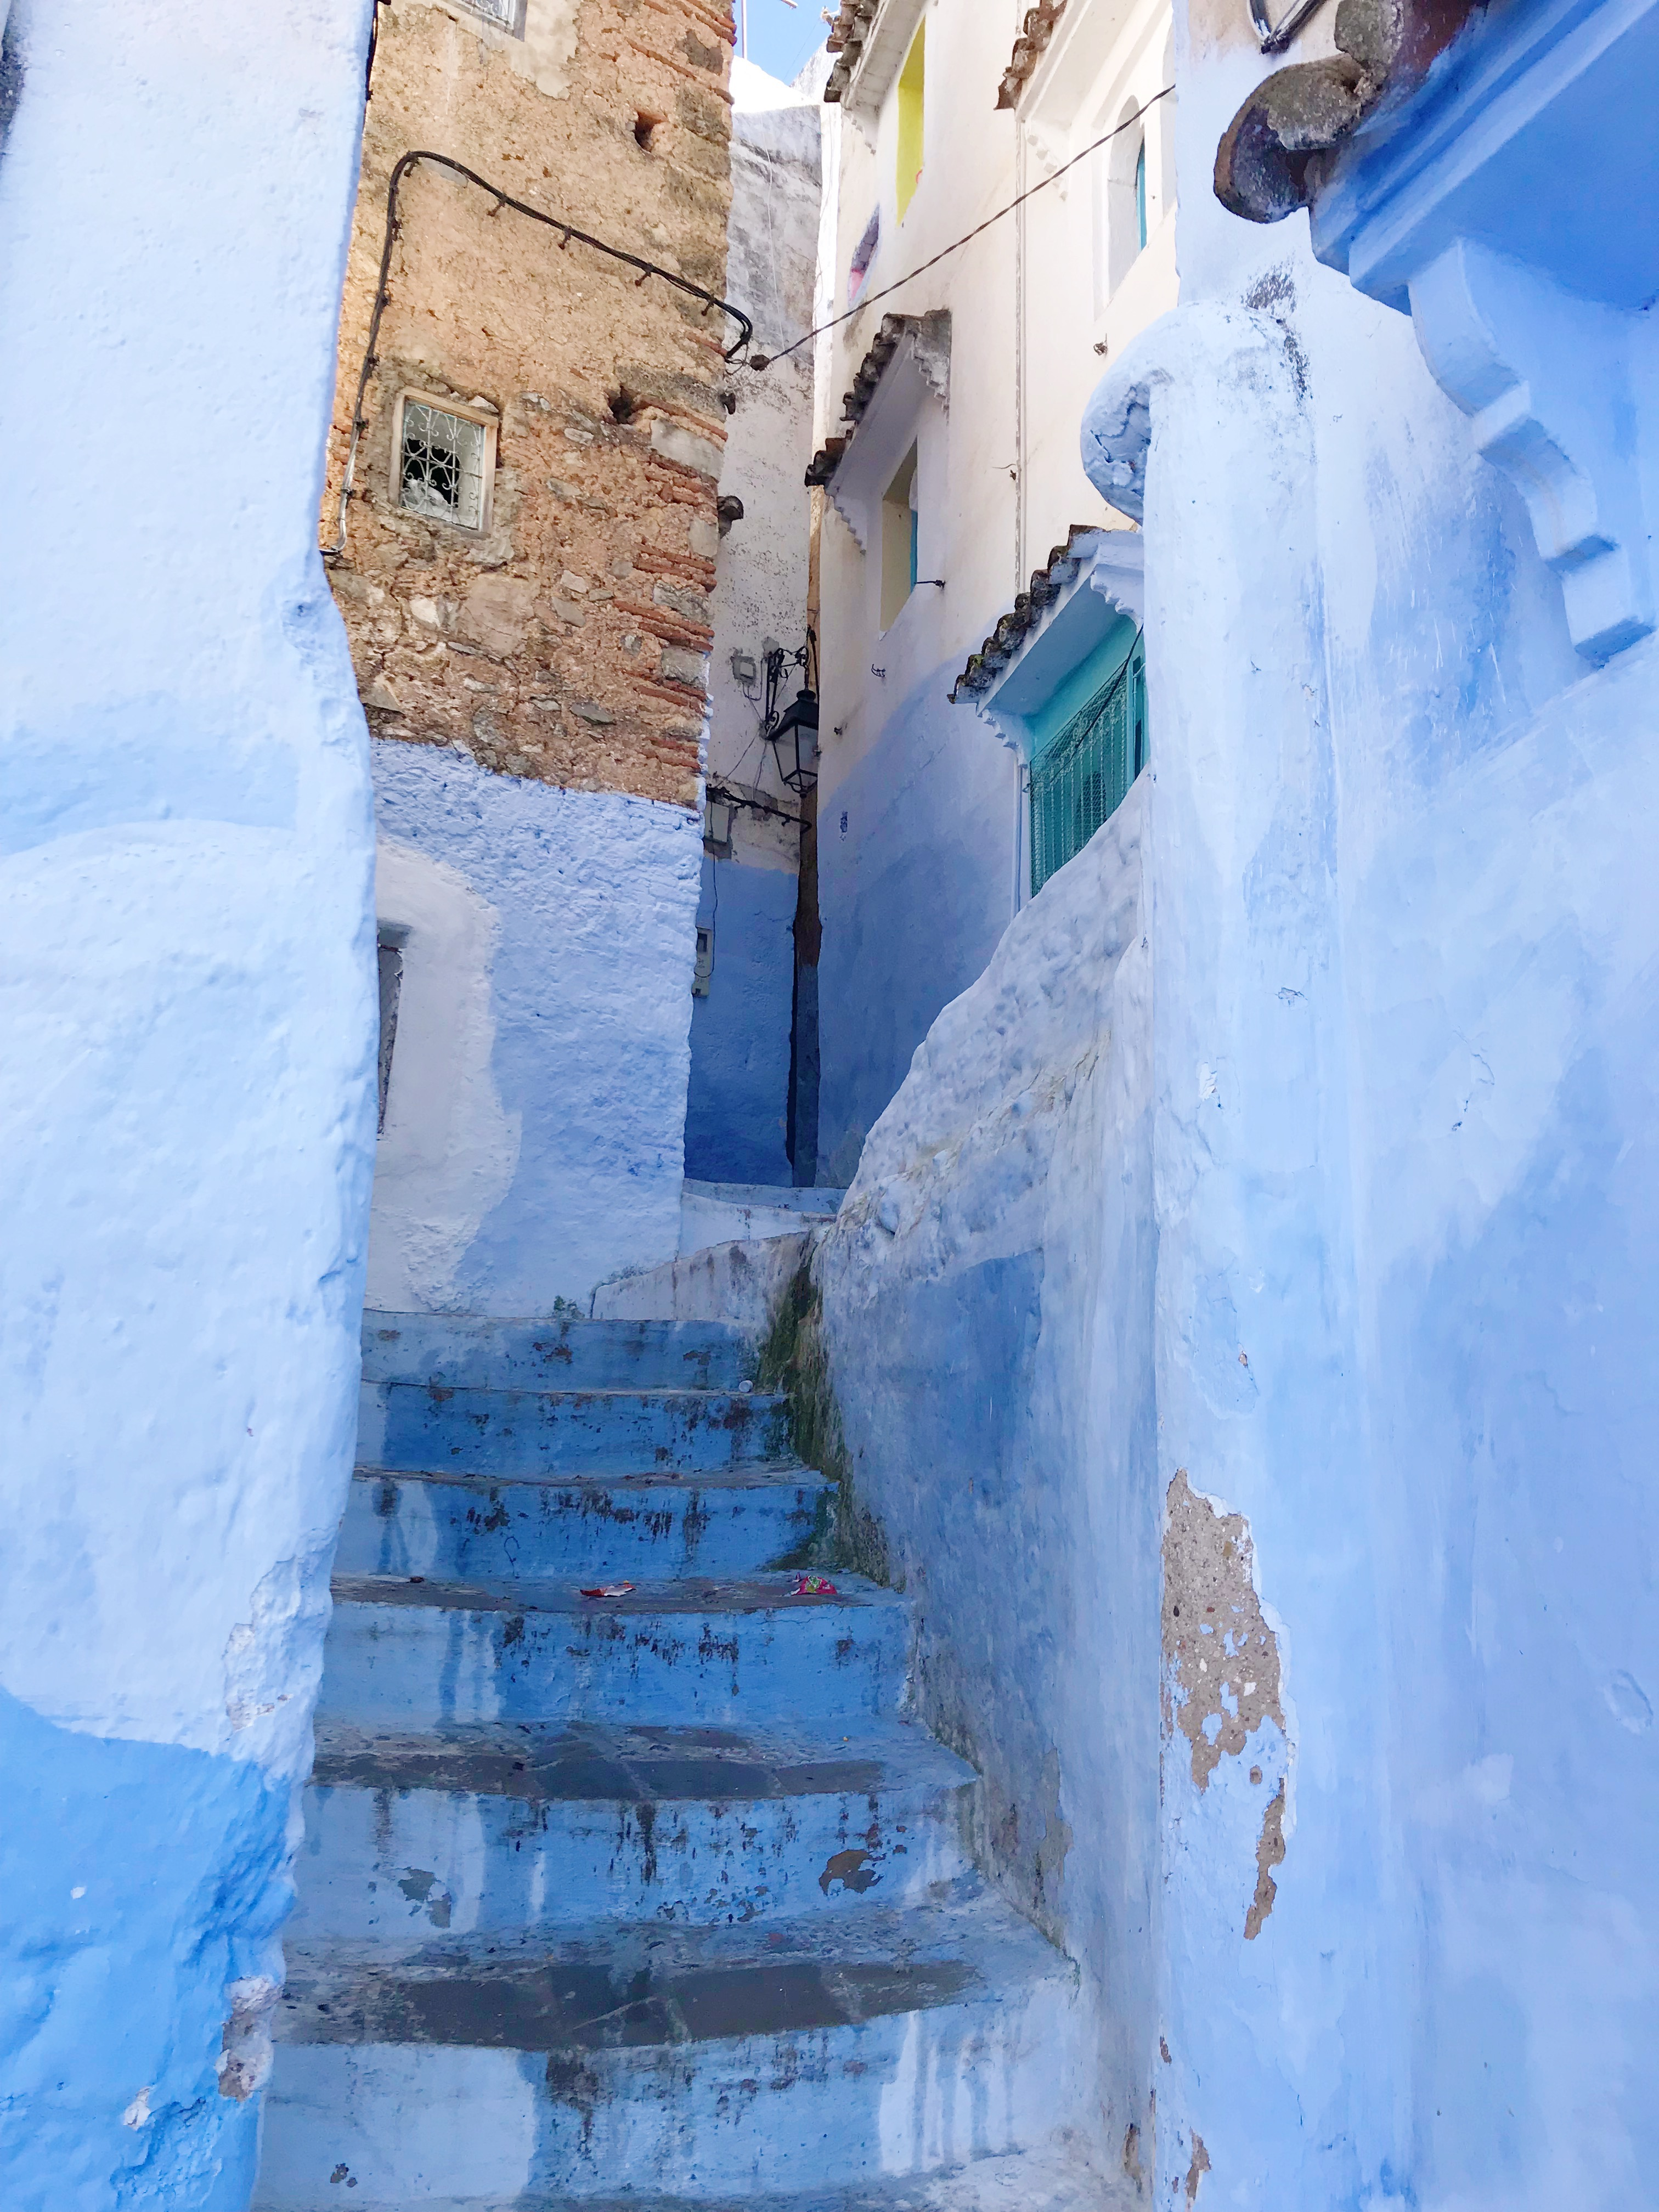 HOW TO SPEND A DAY IN CHEFCHAOUEN | chefchaouen morocco - Chefchaouen - Fes to Chefchaouen - Morocco Blue City - Traveling In Morocco - Day Trip to Chefchaouen - Morocco Travel Blog - Blue City Morocco - City of Chefchaouen - #morocco #chefchaouen #travelblog